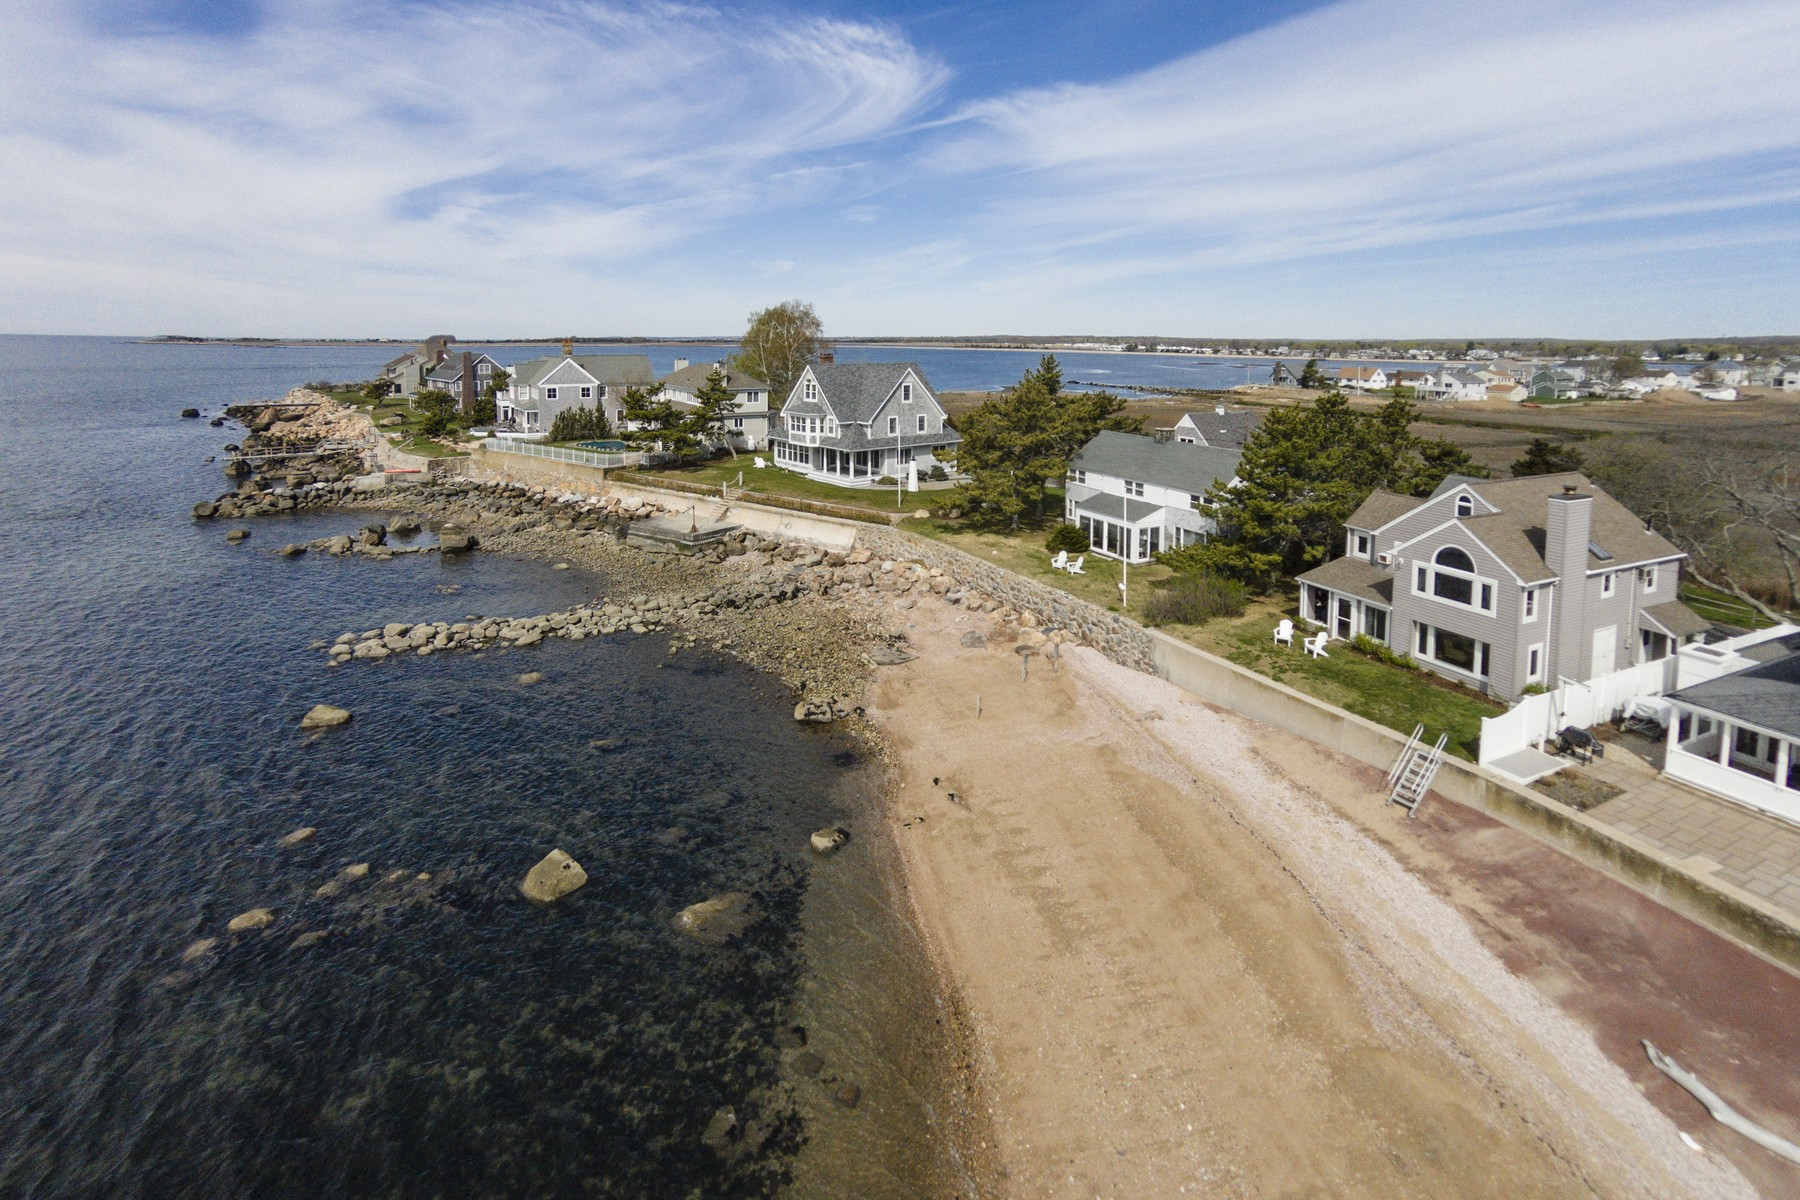 Single Family Home for Sale at Direct Waterfront! Contemporary Colonial 49 Hammock Road, Clinton, Connecticut, 06413 United States